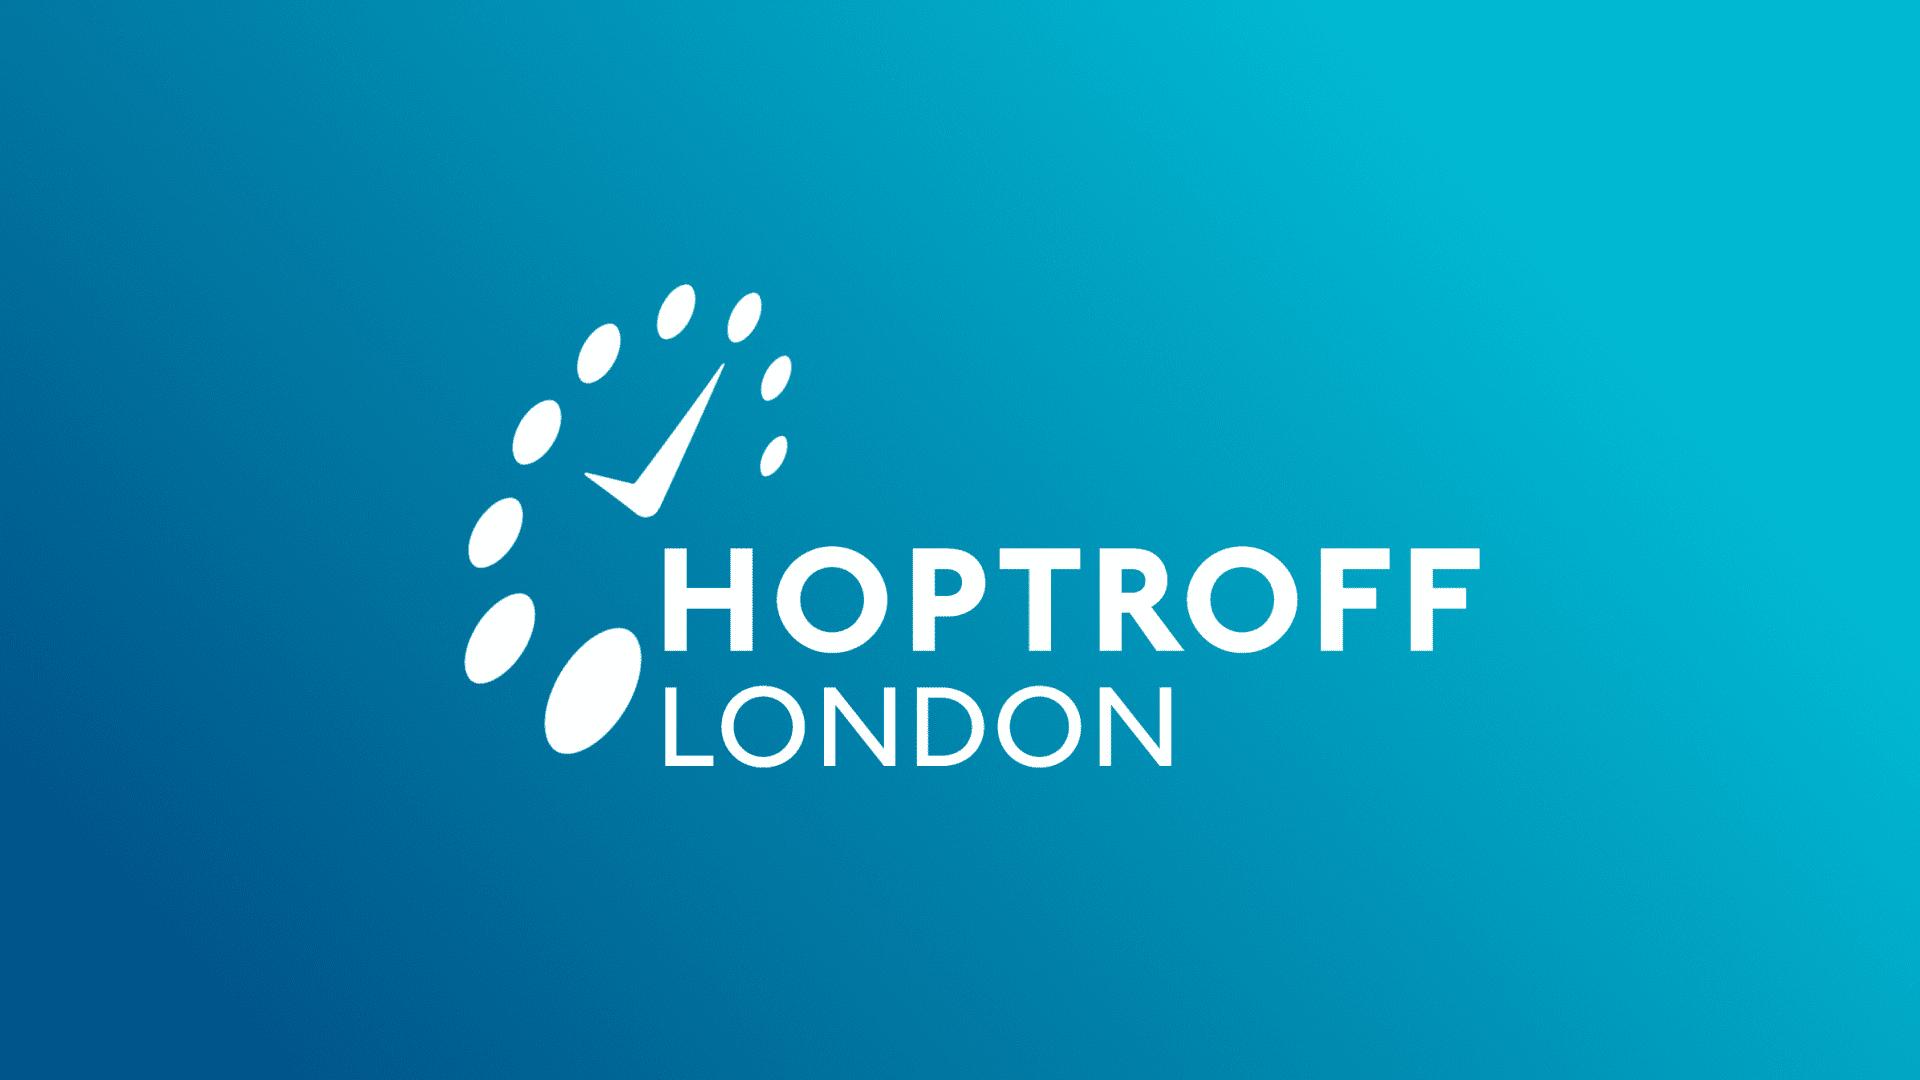 Hoptroff London Crowdfunding Image 1